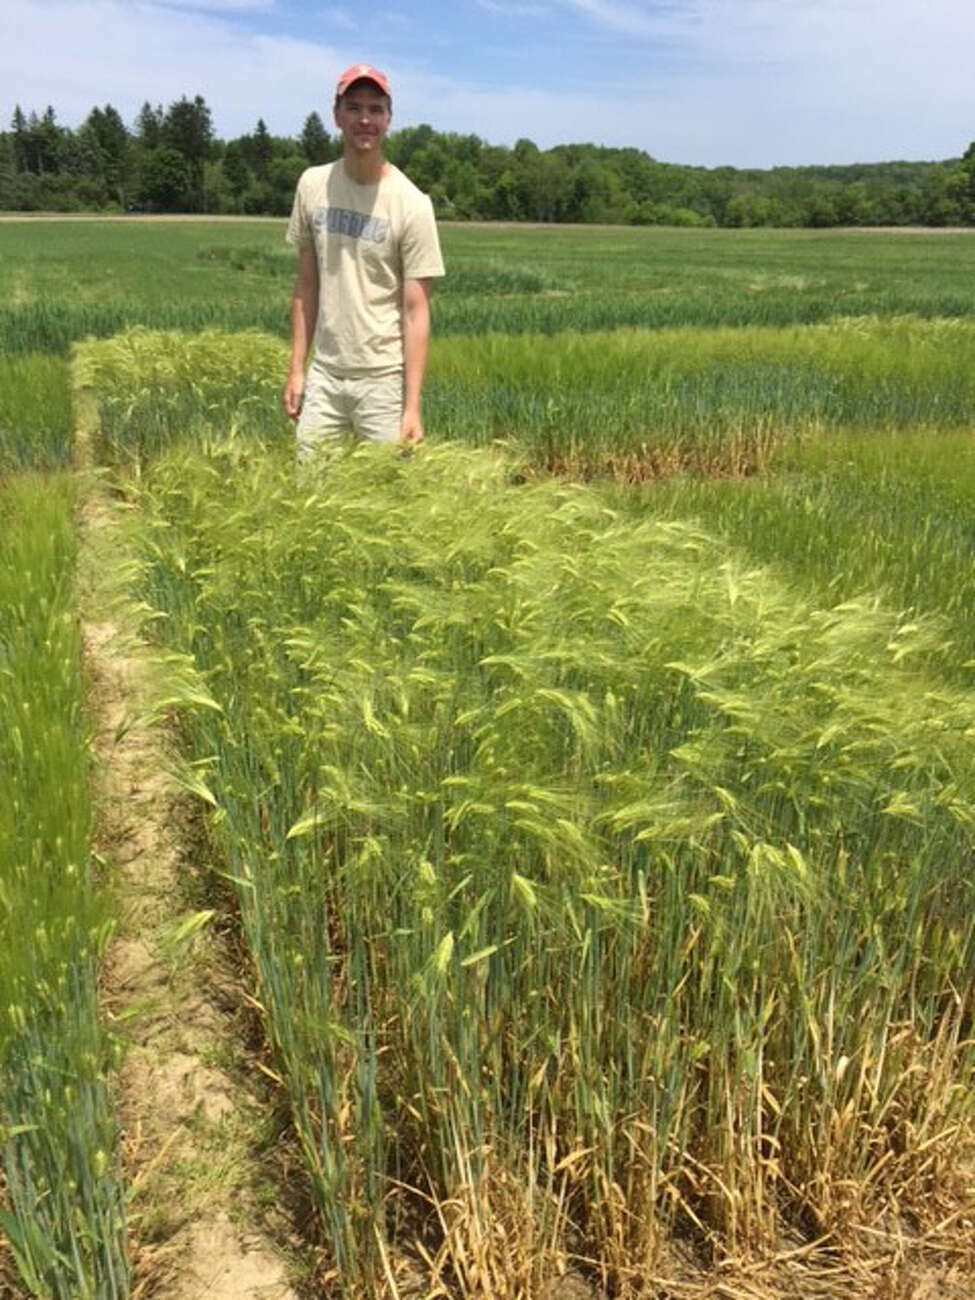 Daniel Sweeney, a graduate student at Cornell University, works in plots of experimental barley varieties that that could help fuel the state's craft brewing movement.